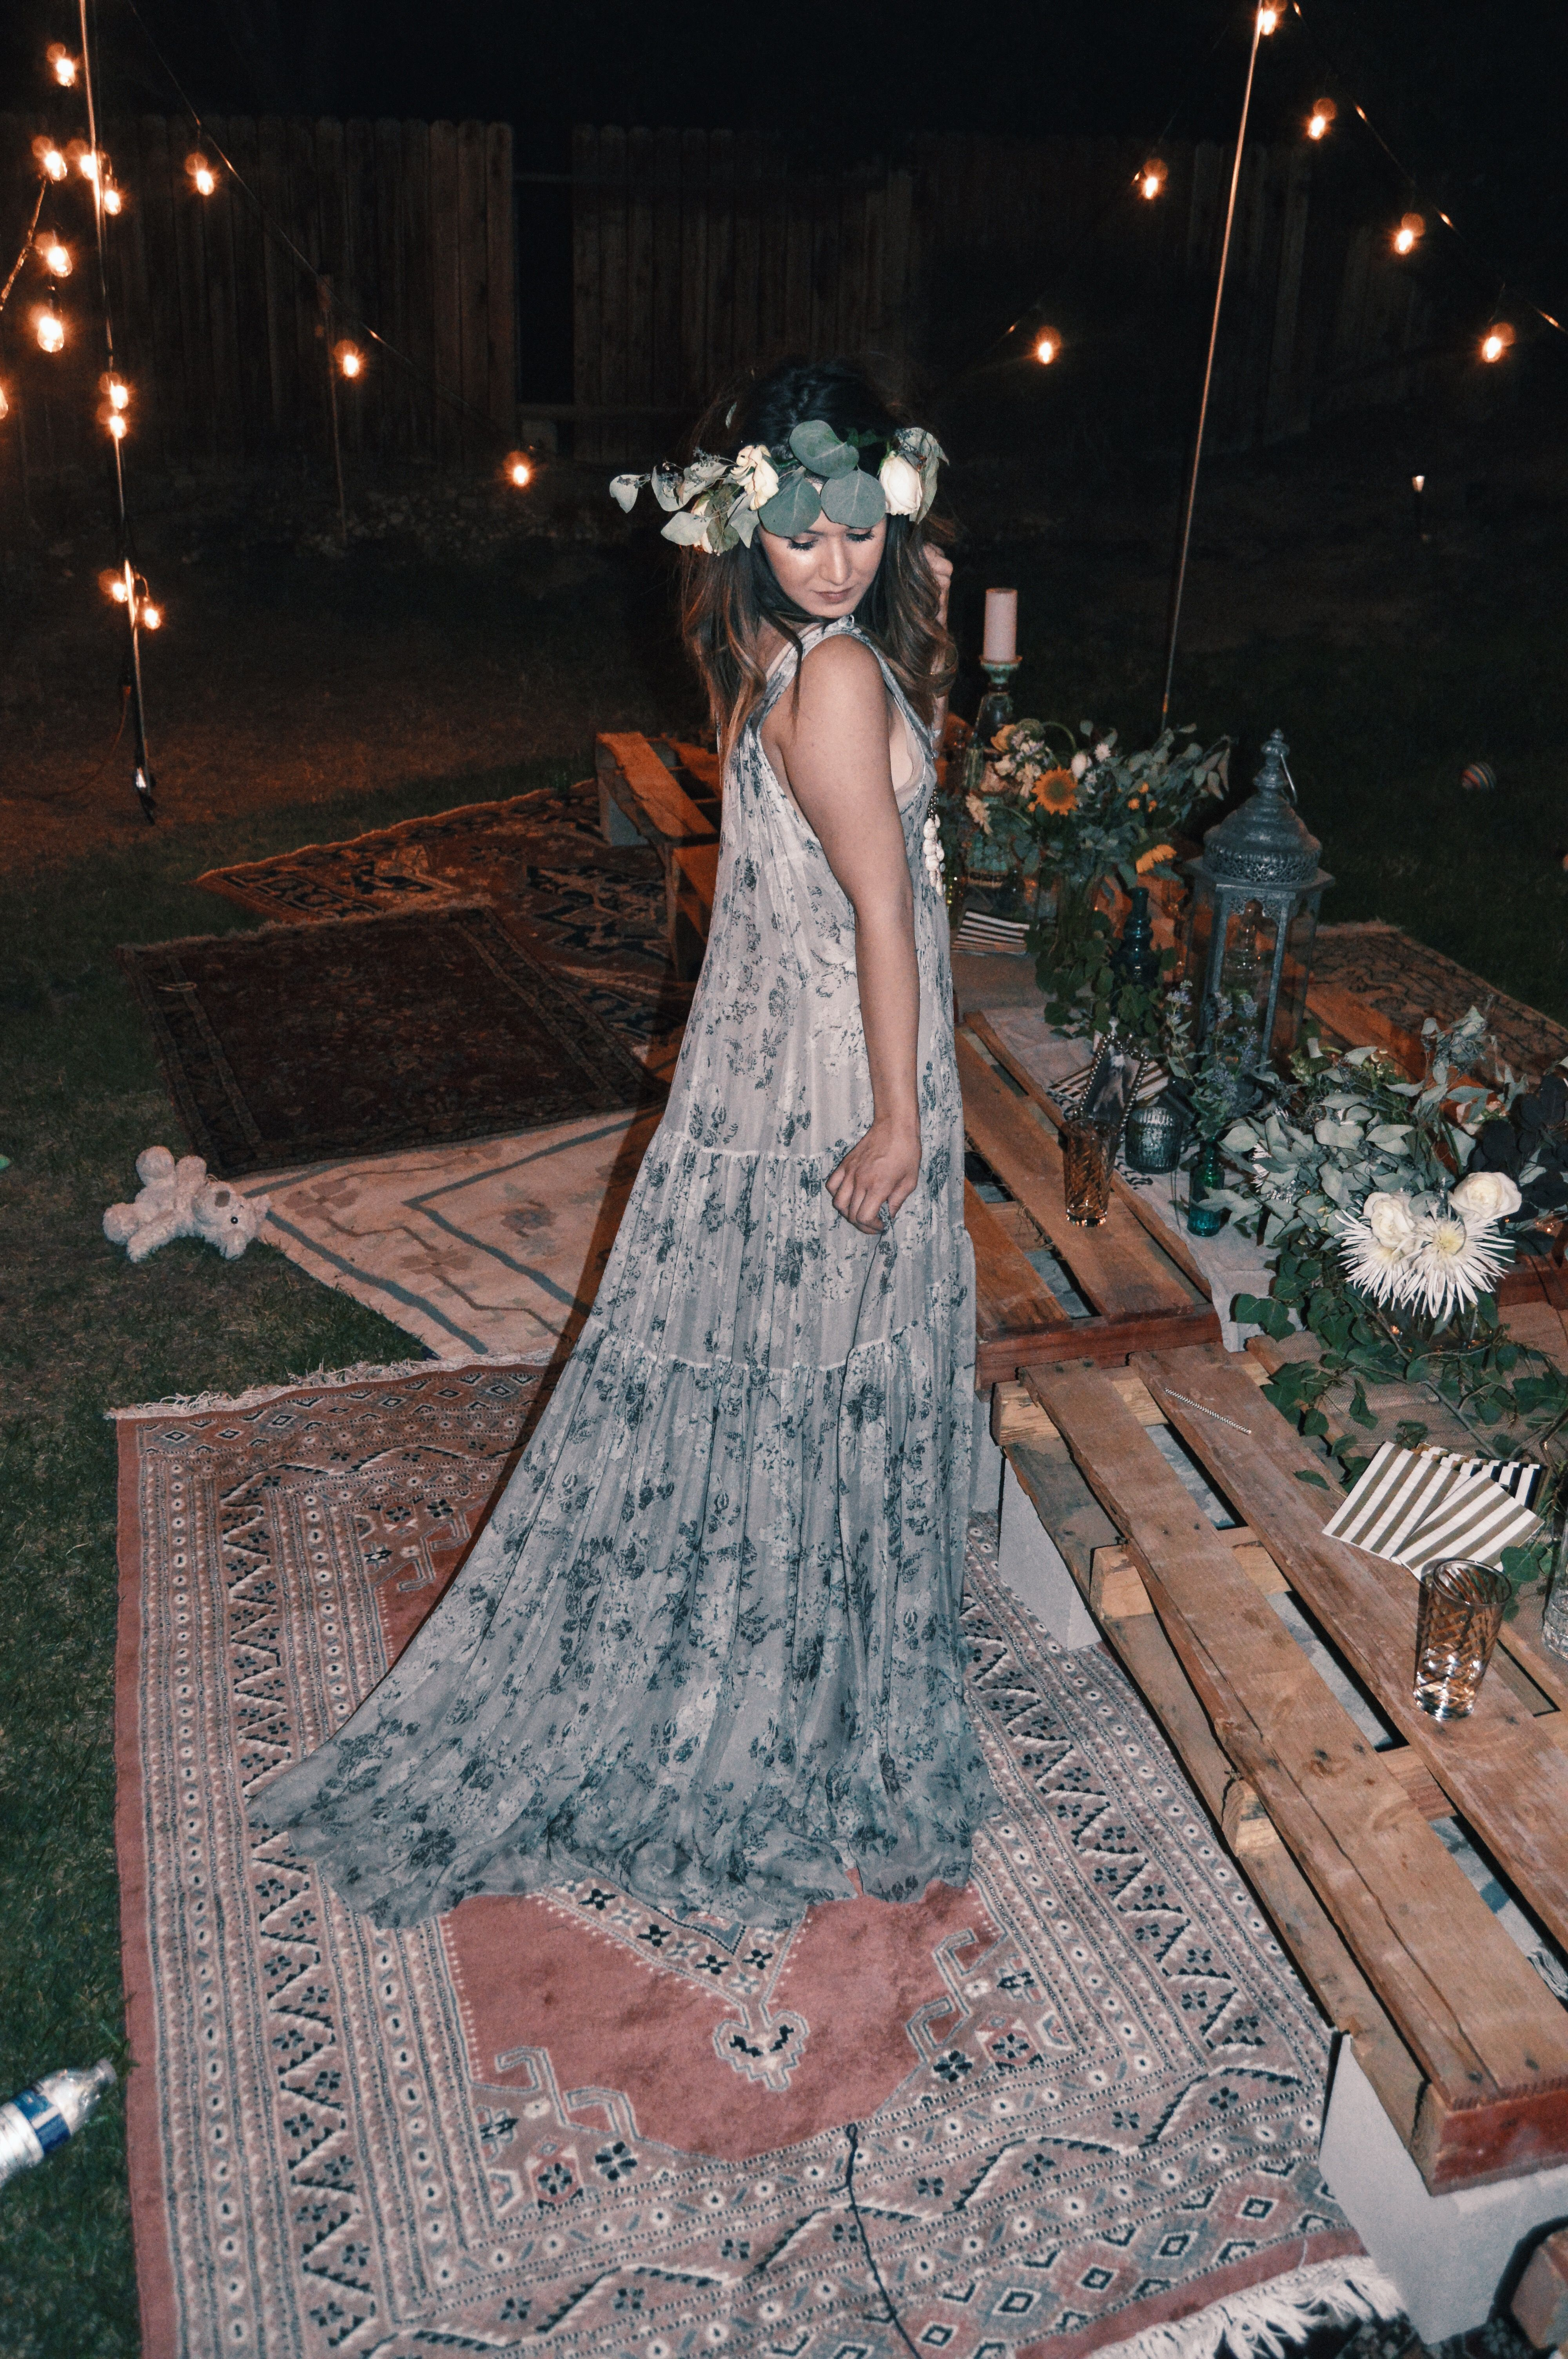 Where can i rent a wedding dress  Kyraus Bohemian Party With Rent the Runway  Boho chic Bohemian